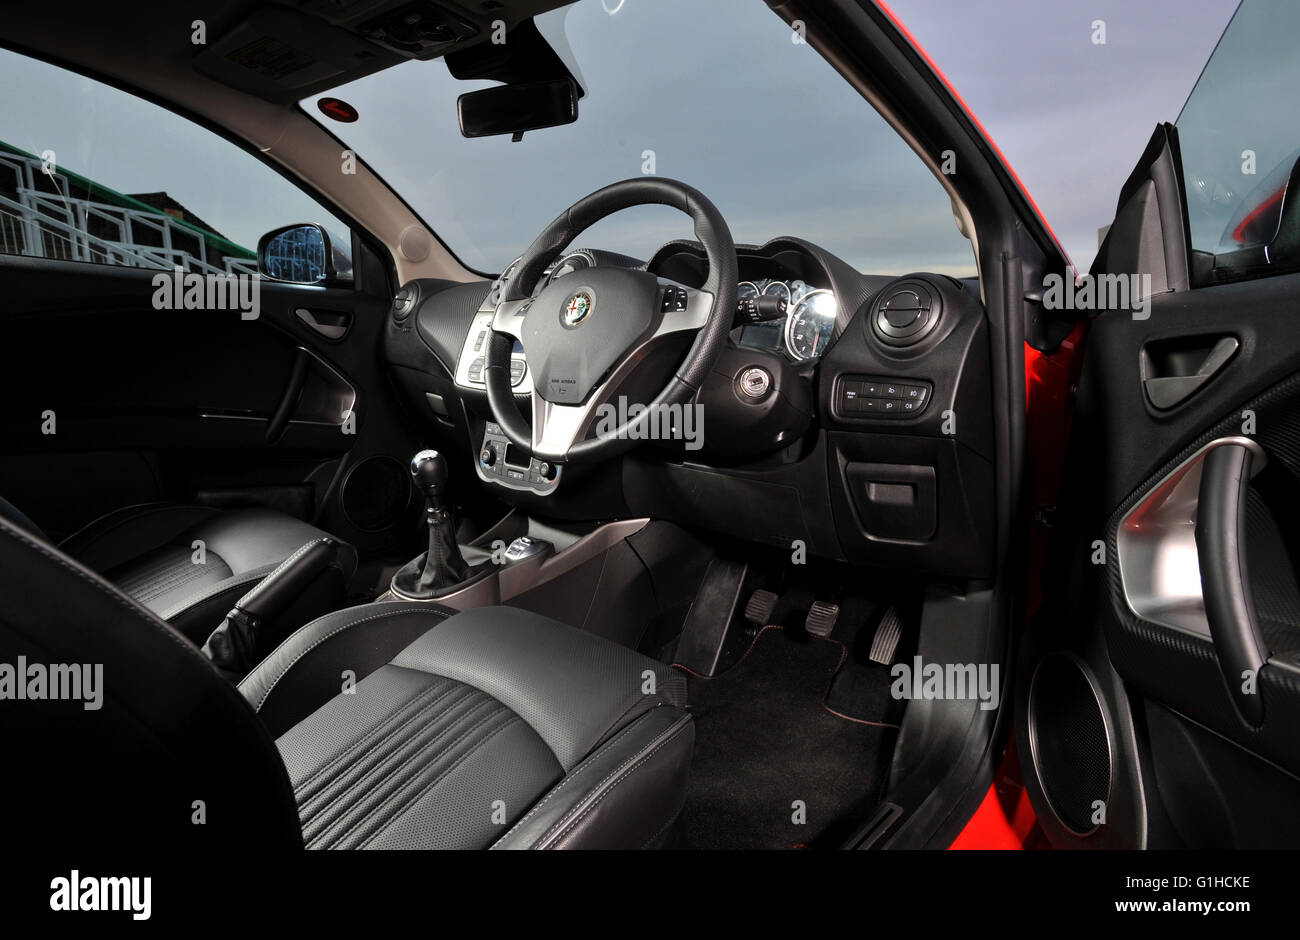 Alfa 147 Interieur Alfa Romeo Interior Stock Photos Alfa Romeo Interior Stock